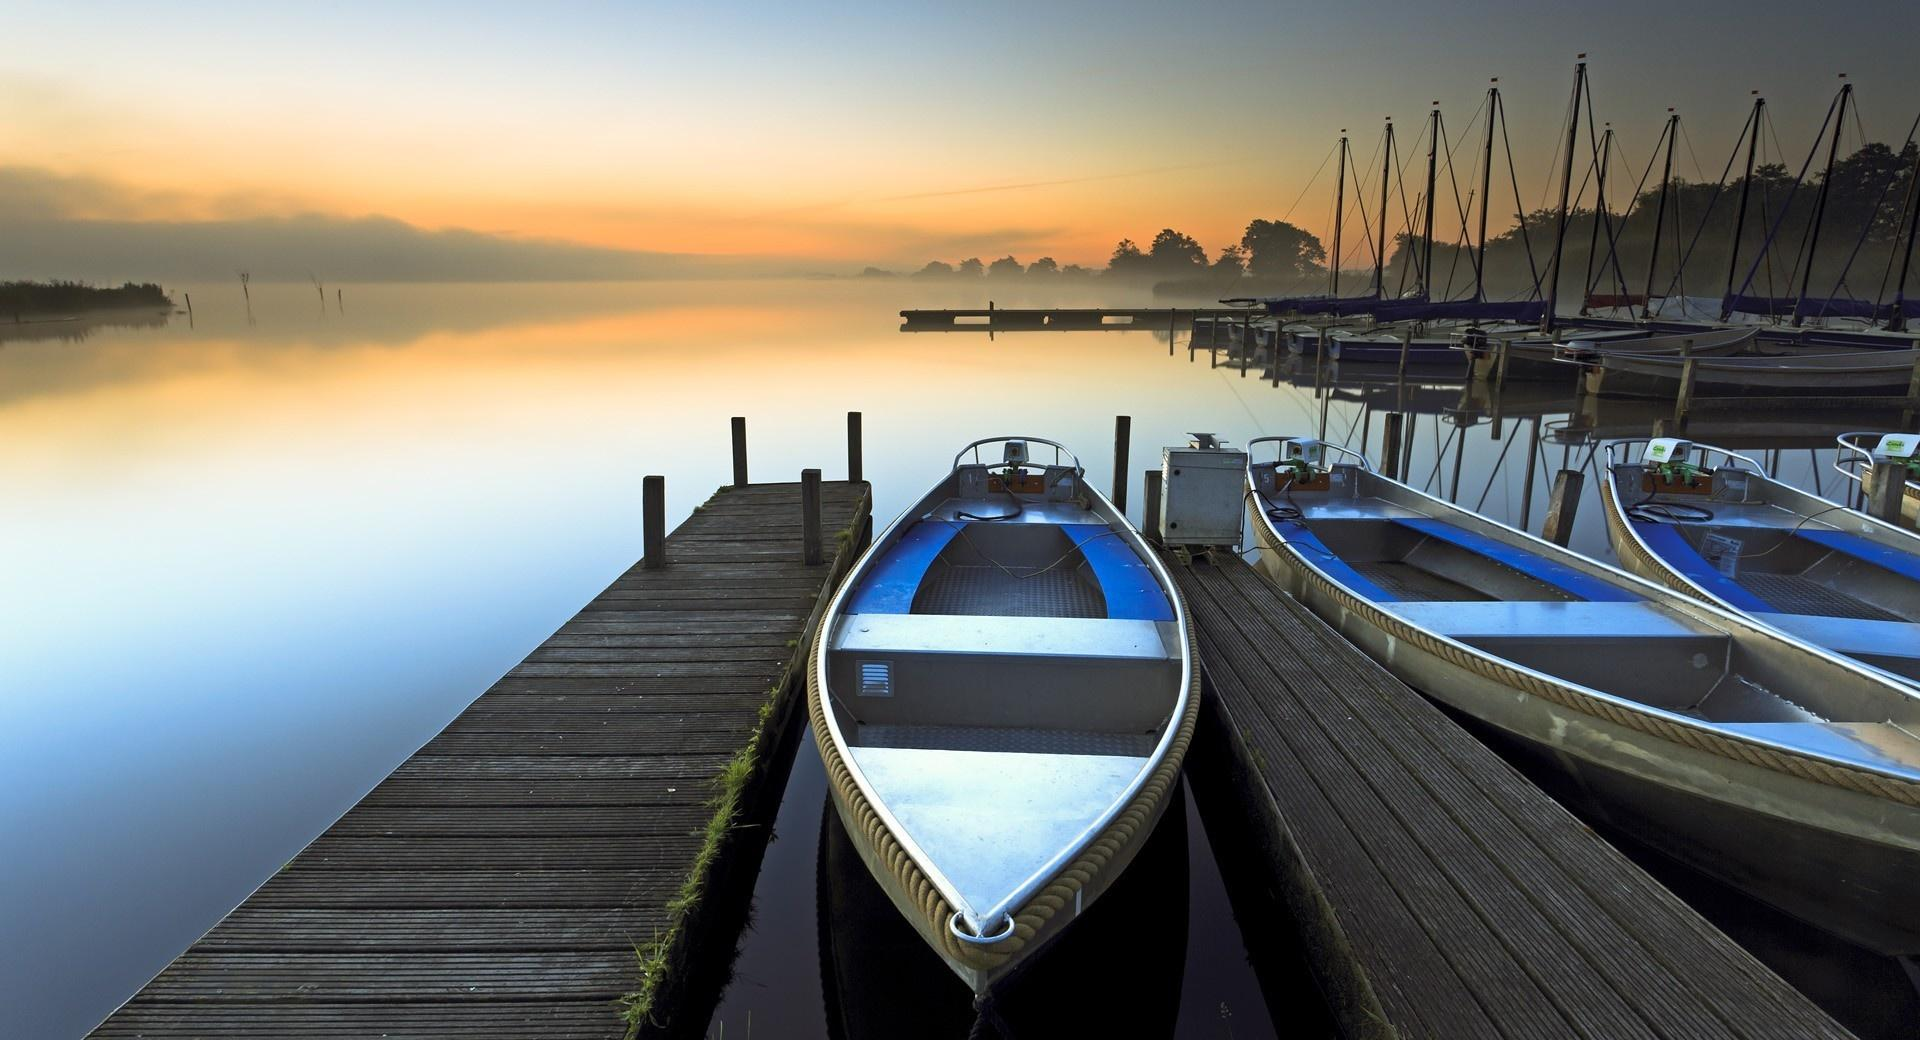 Boat Sunrise wallpapers HD quality